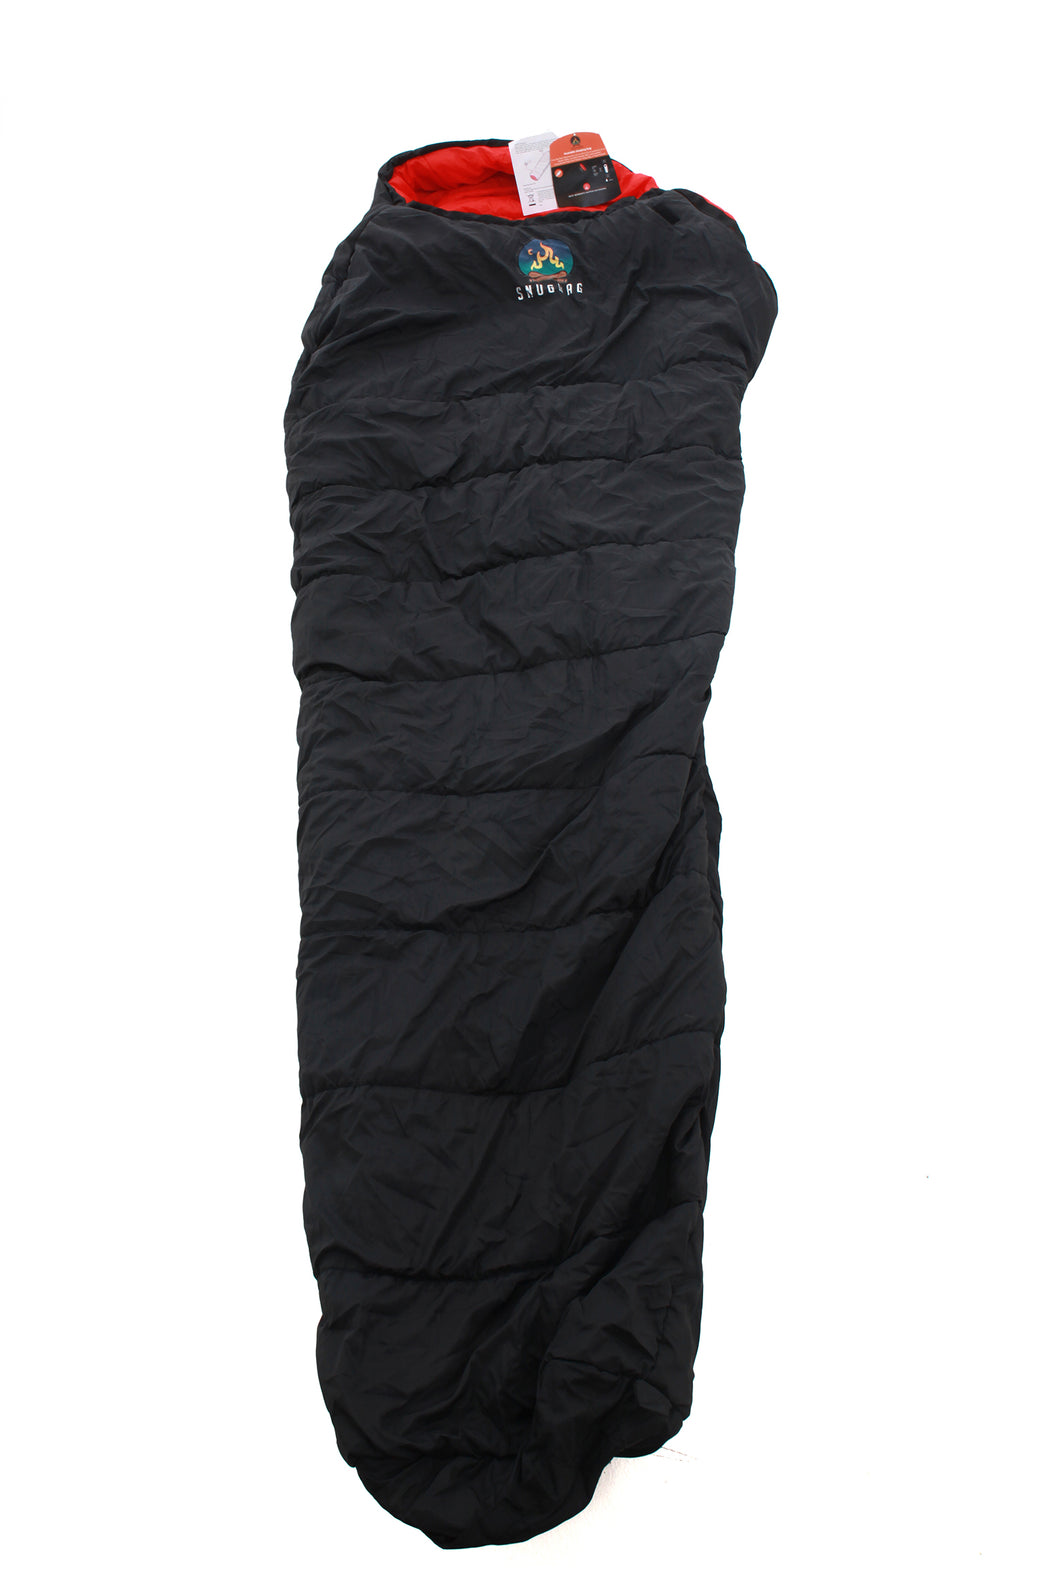 Snugbag Heated Sleeping Bag for Camping Fishing Festivals